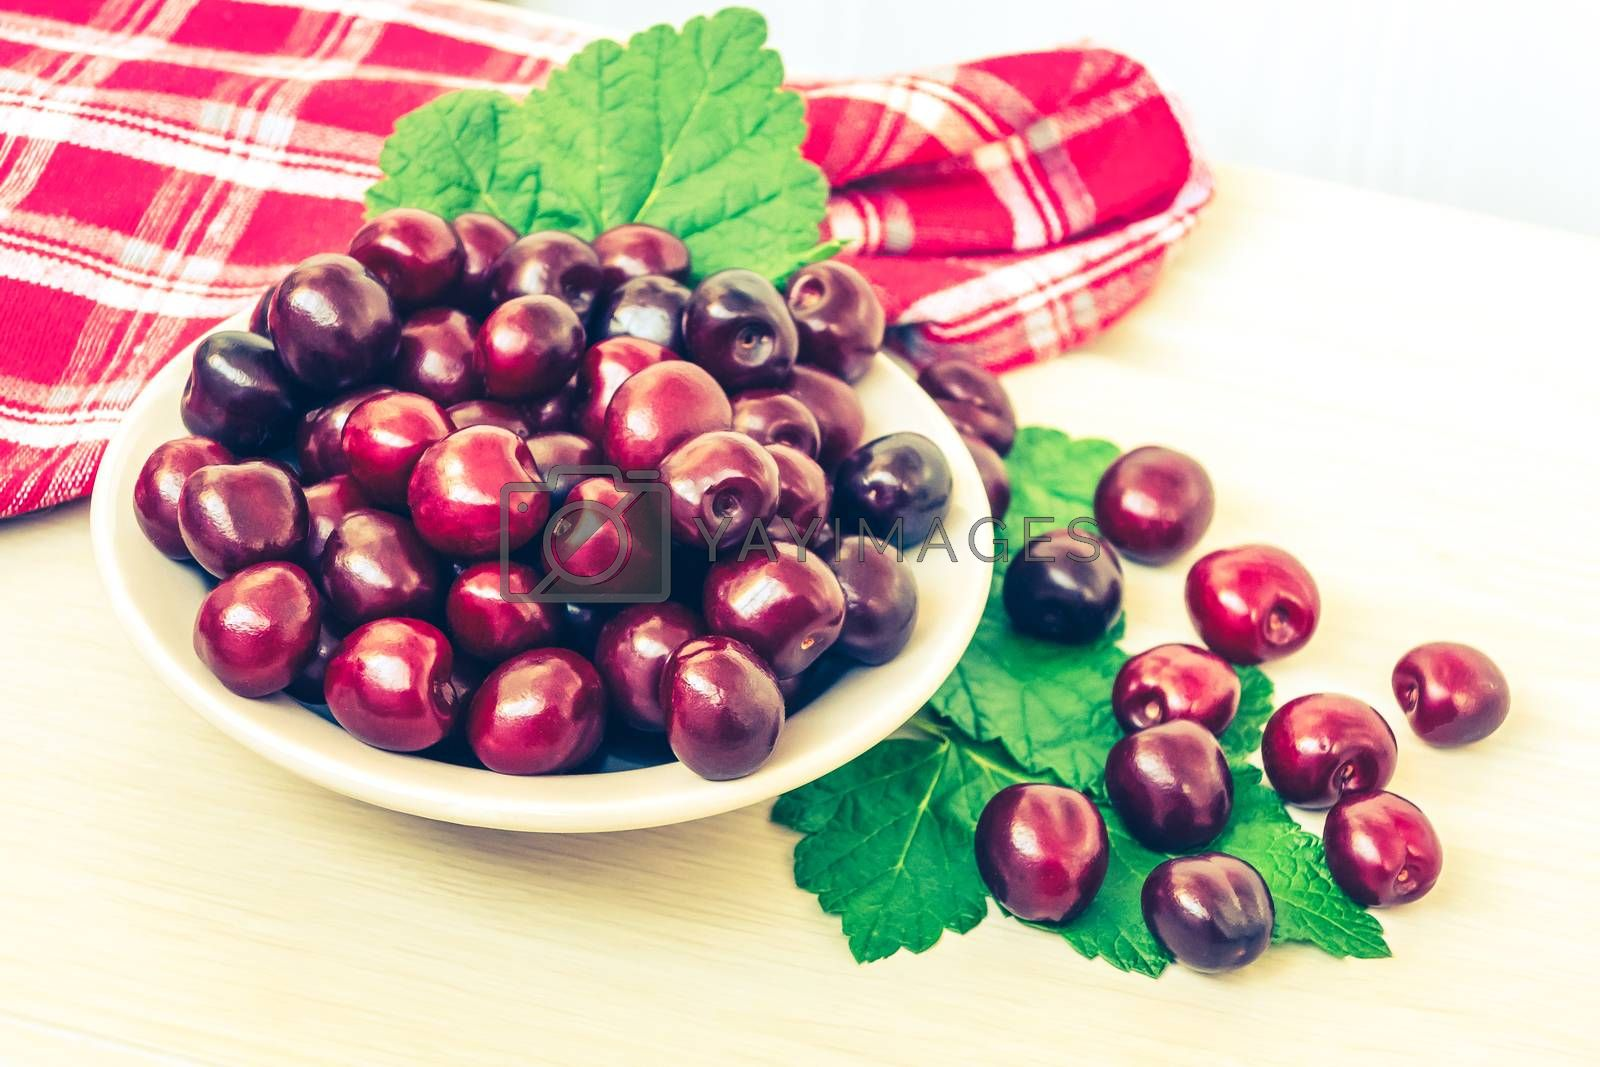 Fresh ripe sweet cherry in a plate on a light table by galsand